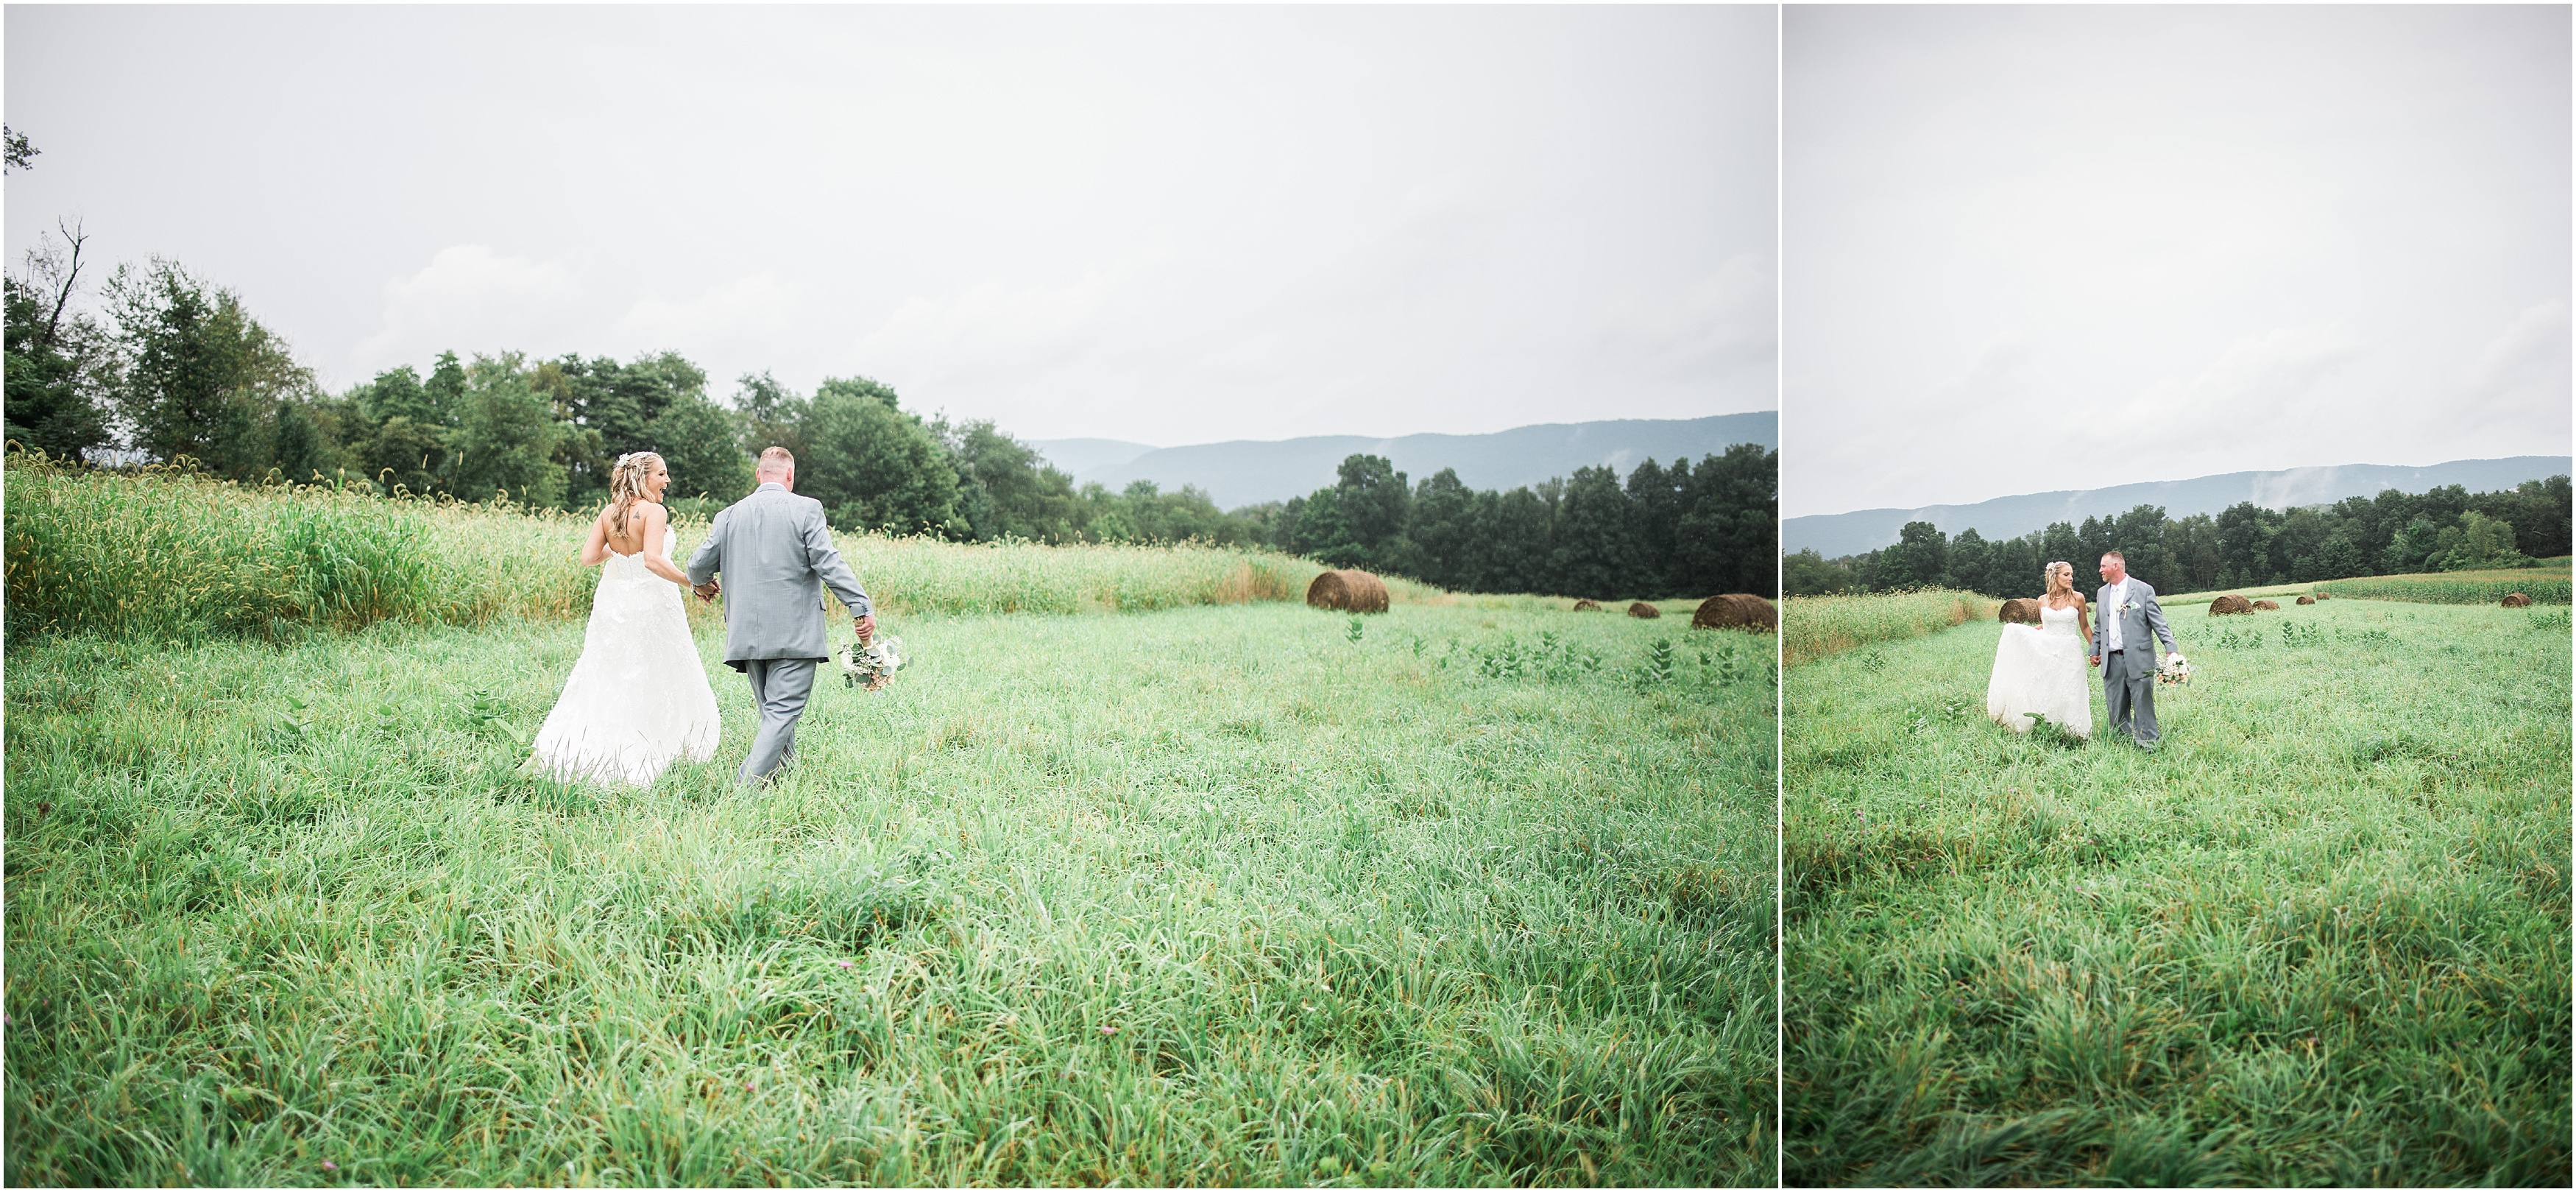 NEPA Wedding and Destination Photographer